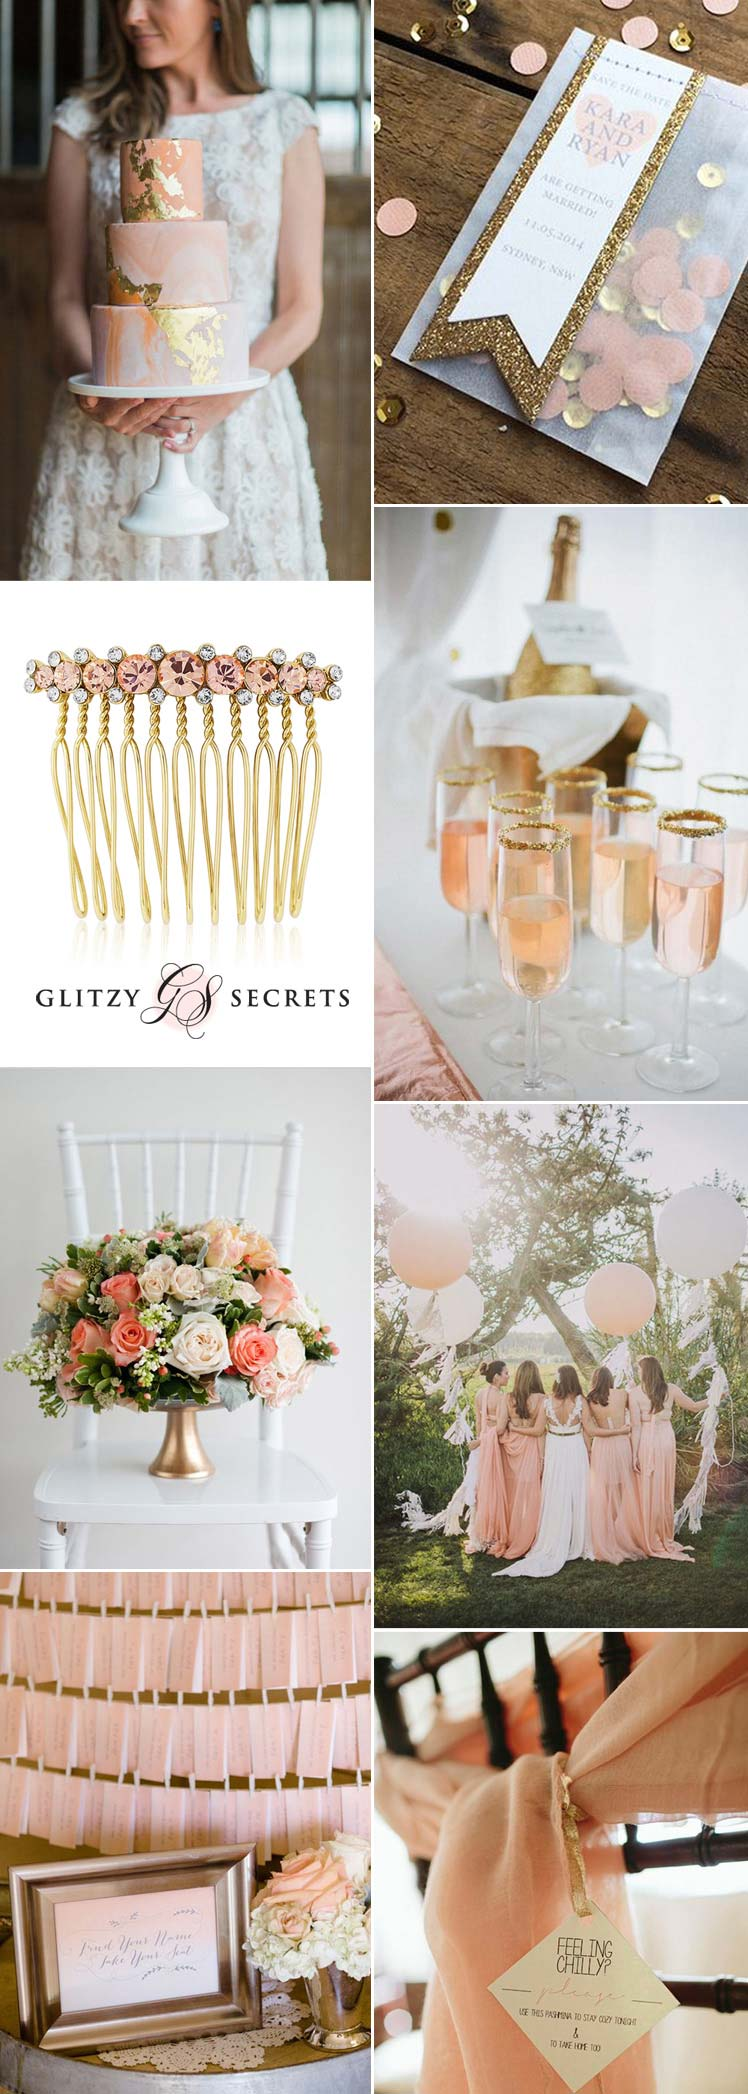 Beautiful ideas for a peach and gold wedding theme